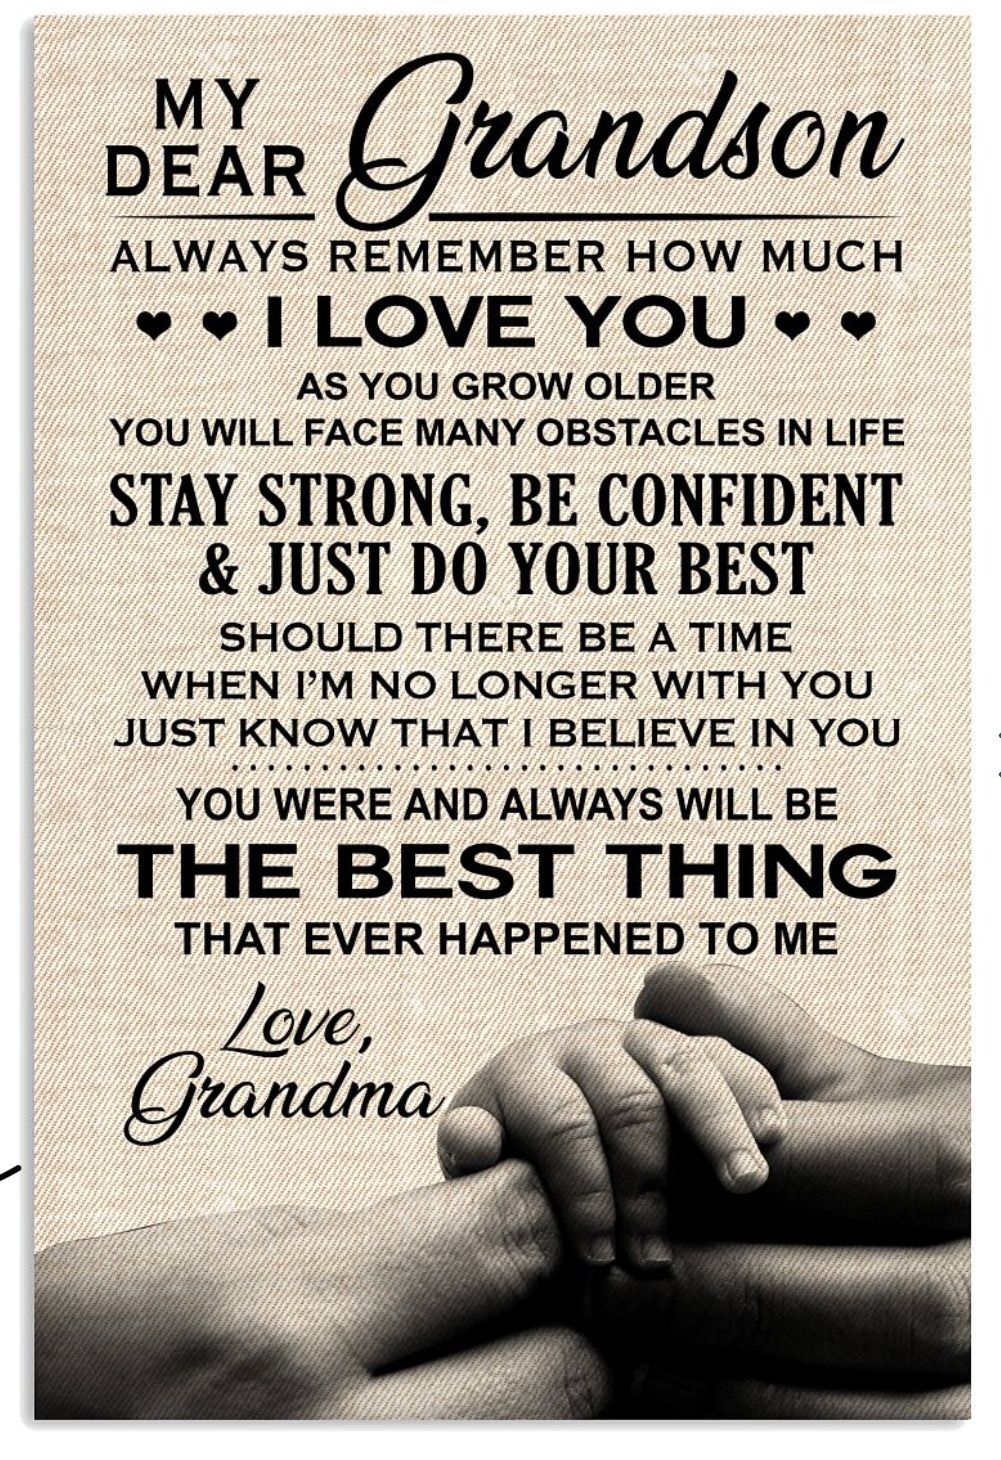 My Dear Grandson Quotes About Grandchildren Grandma Quotes Grandparents Quotes What should i write in my granddaughter